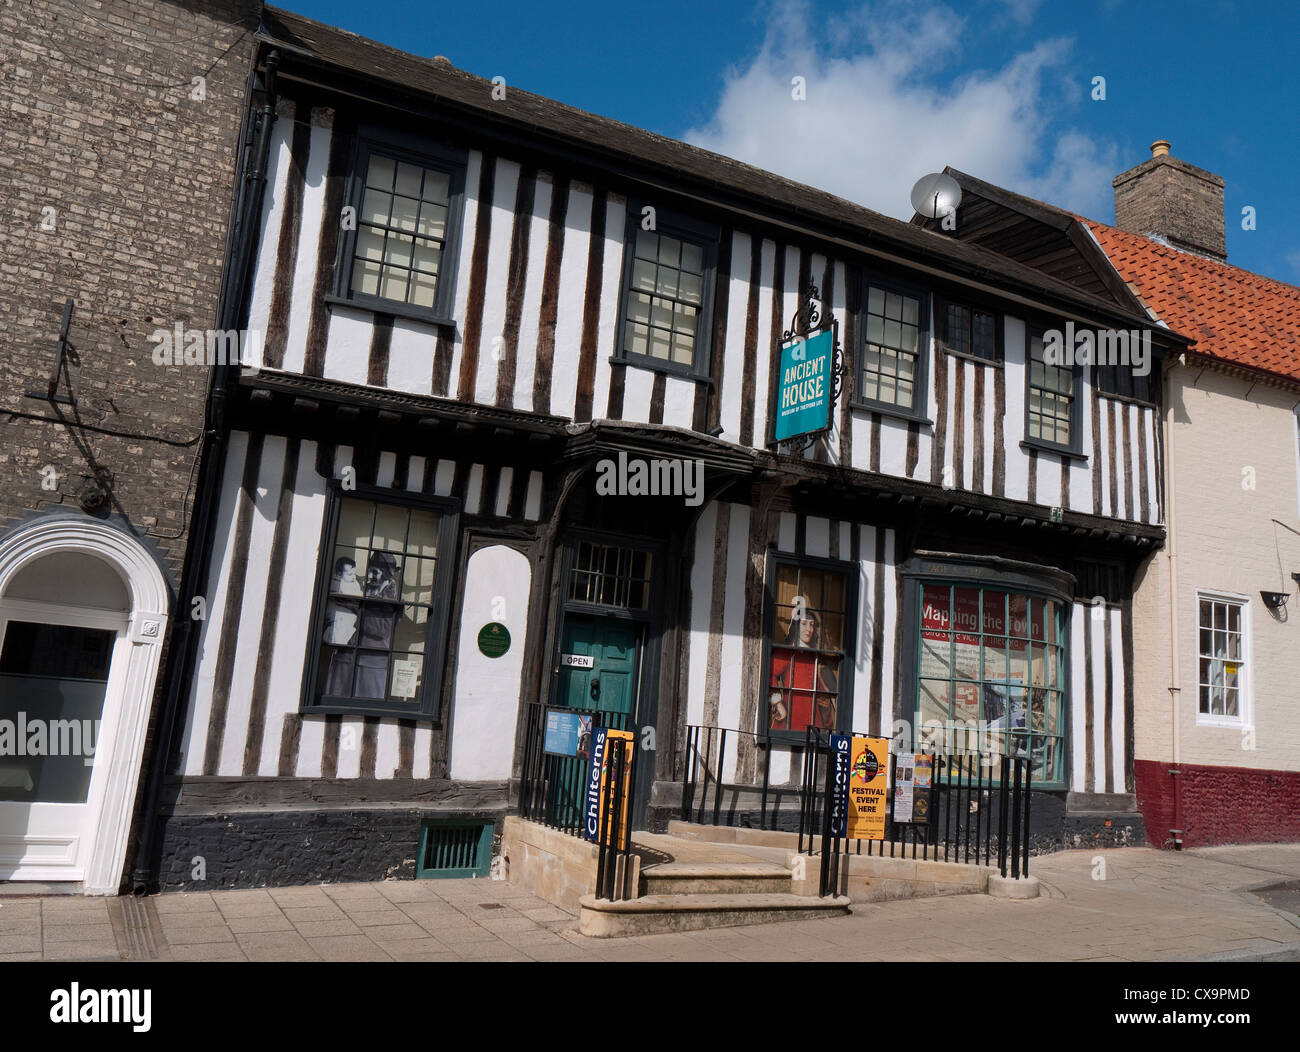 ancient house museum, thetford, norfolk, england - Stock Image